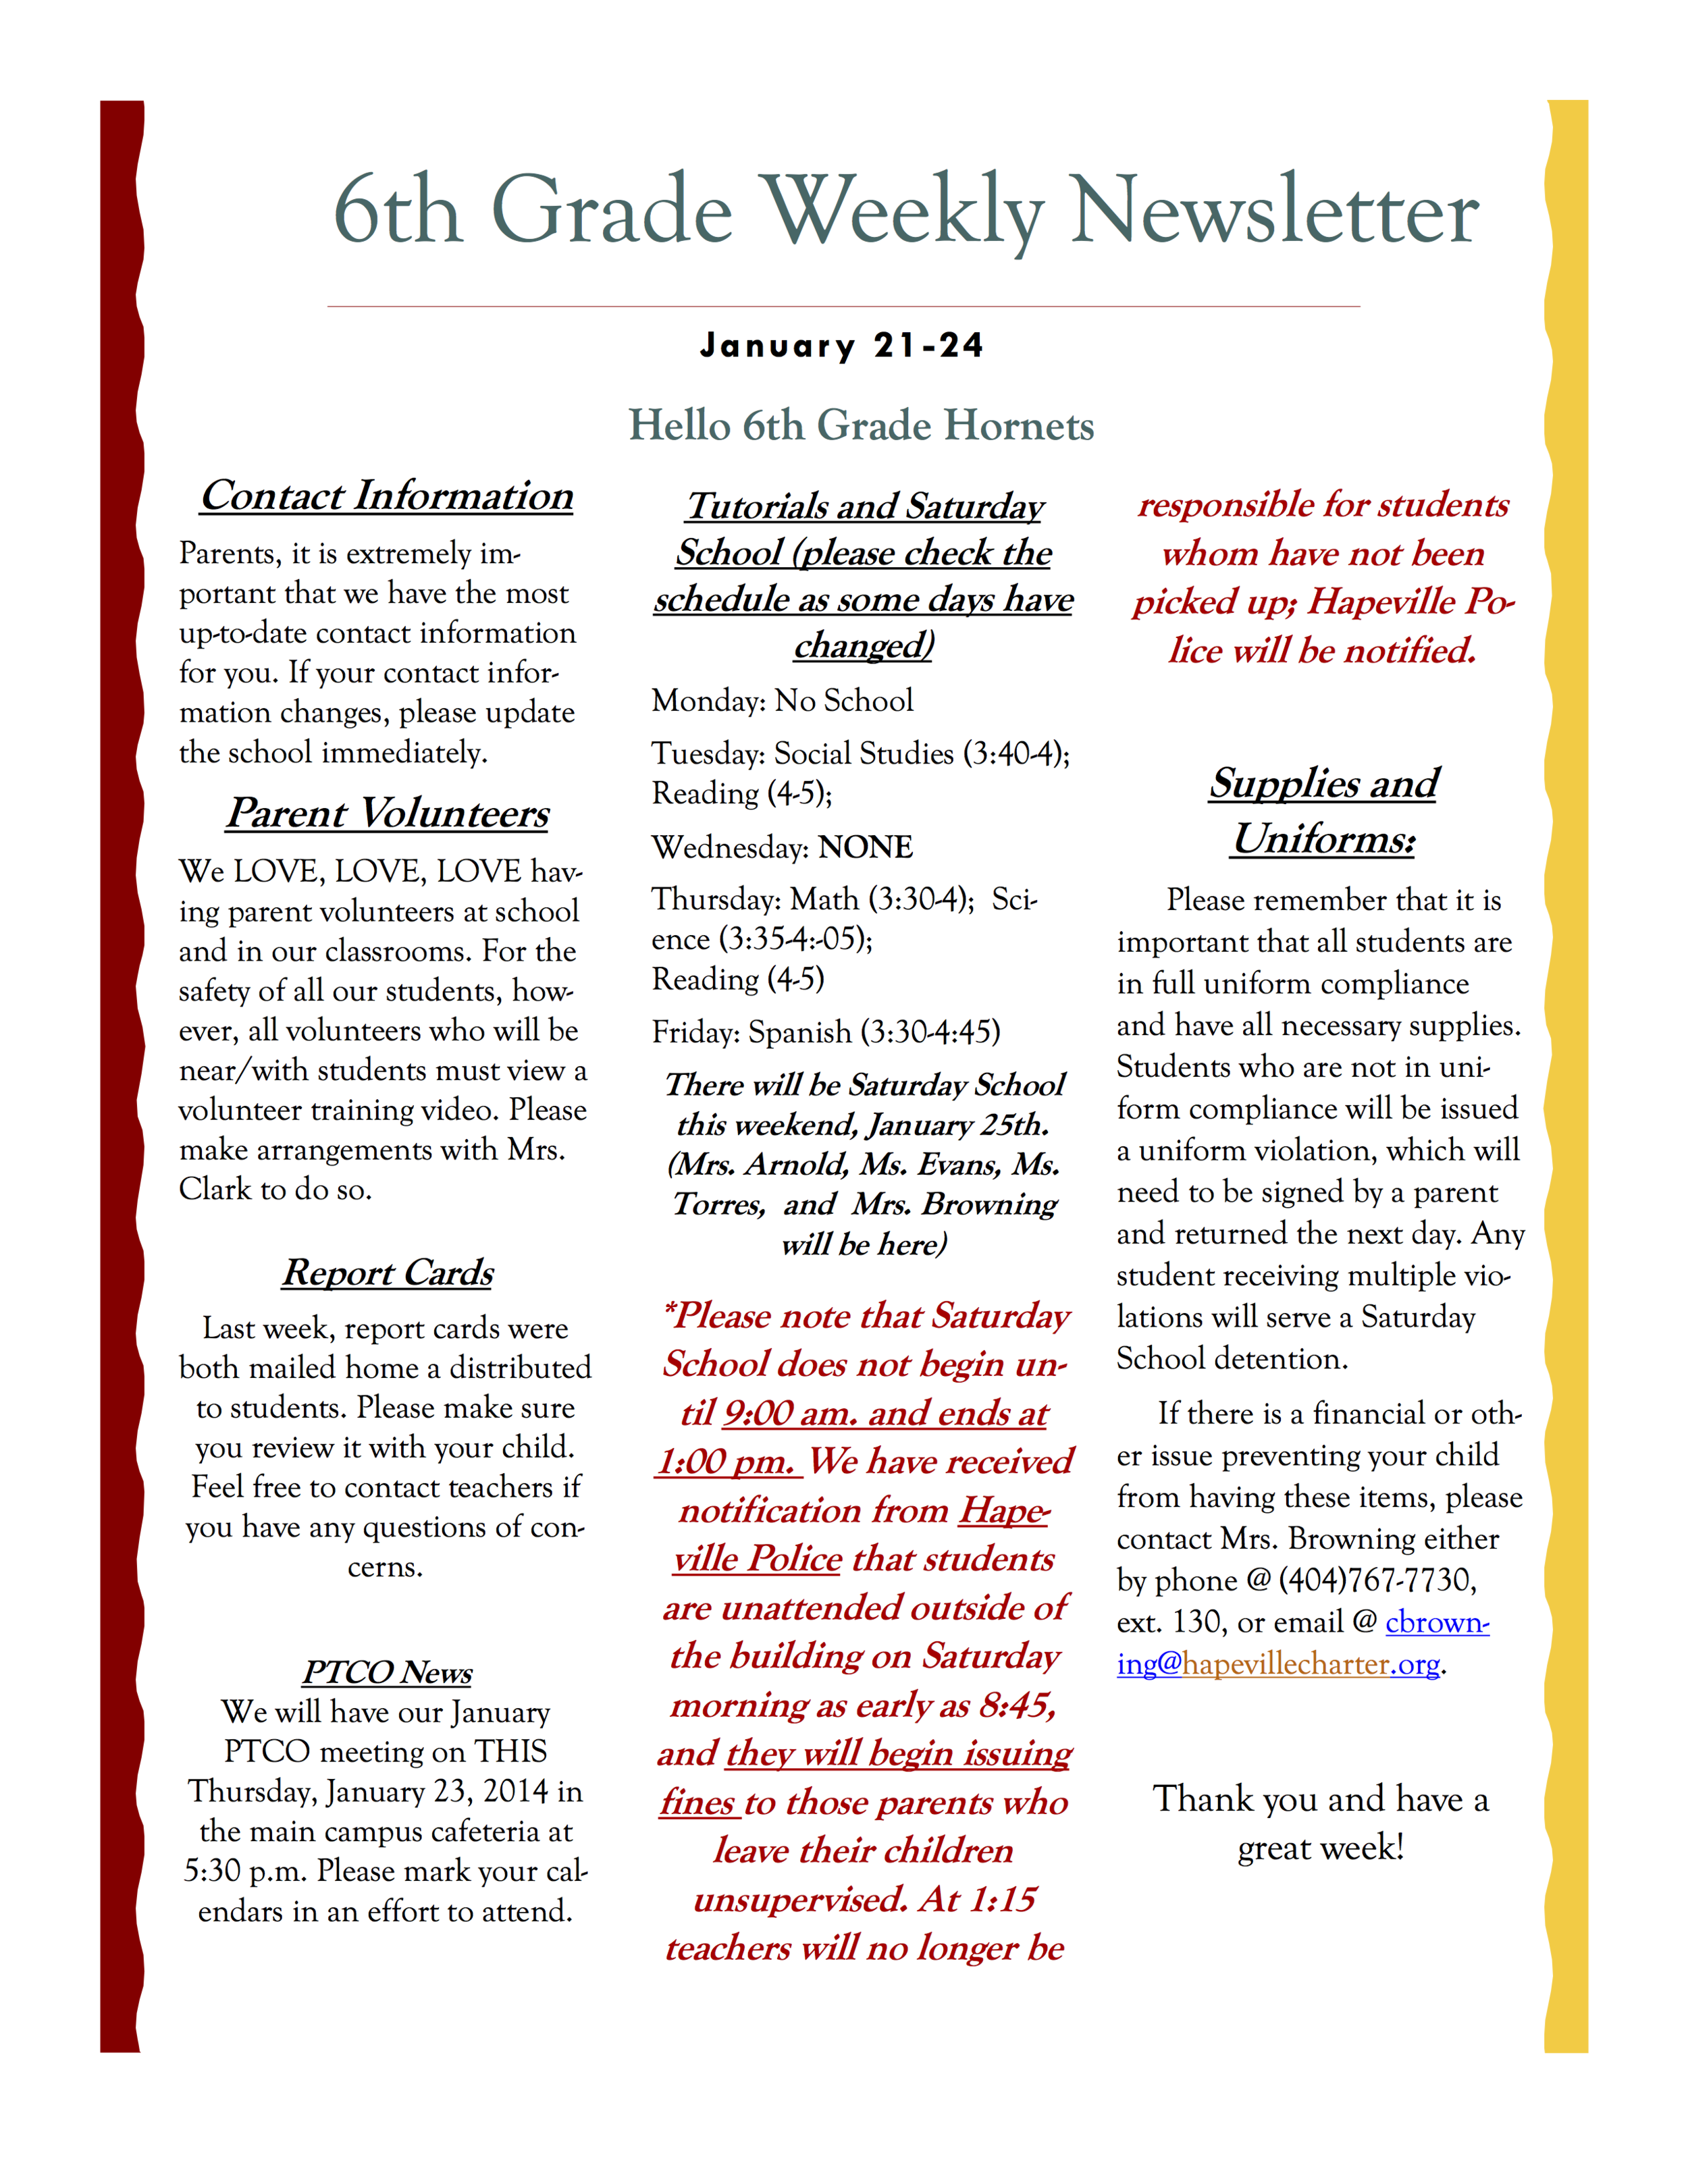 6th grade newsletter January 21A.png